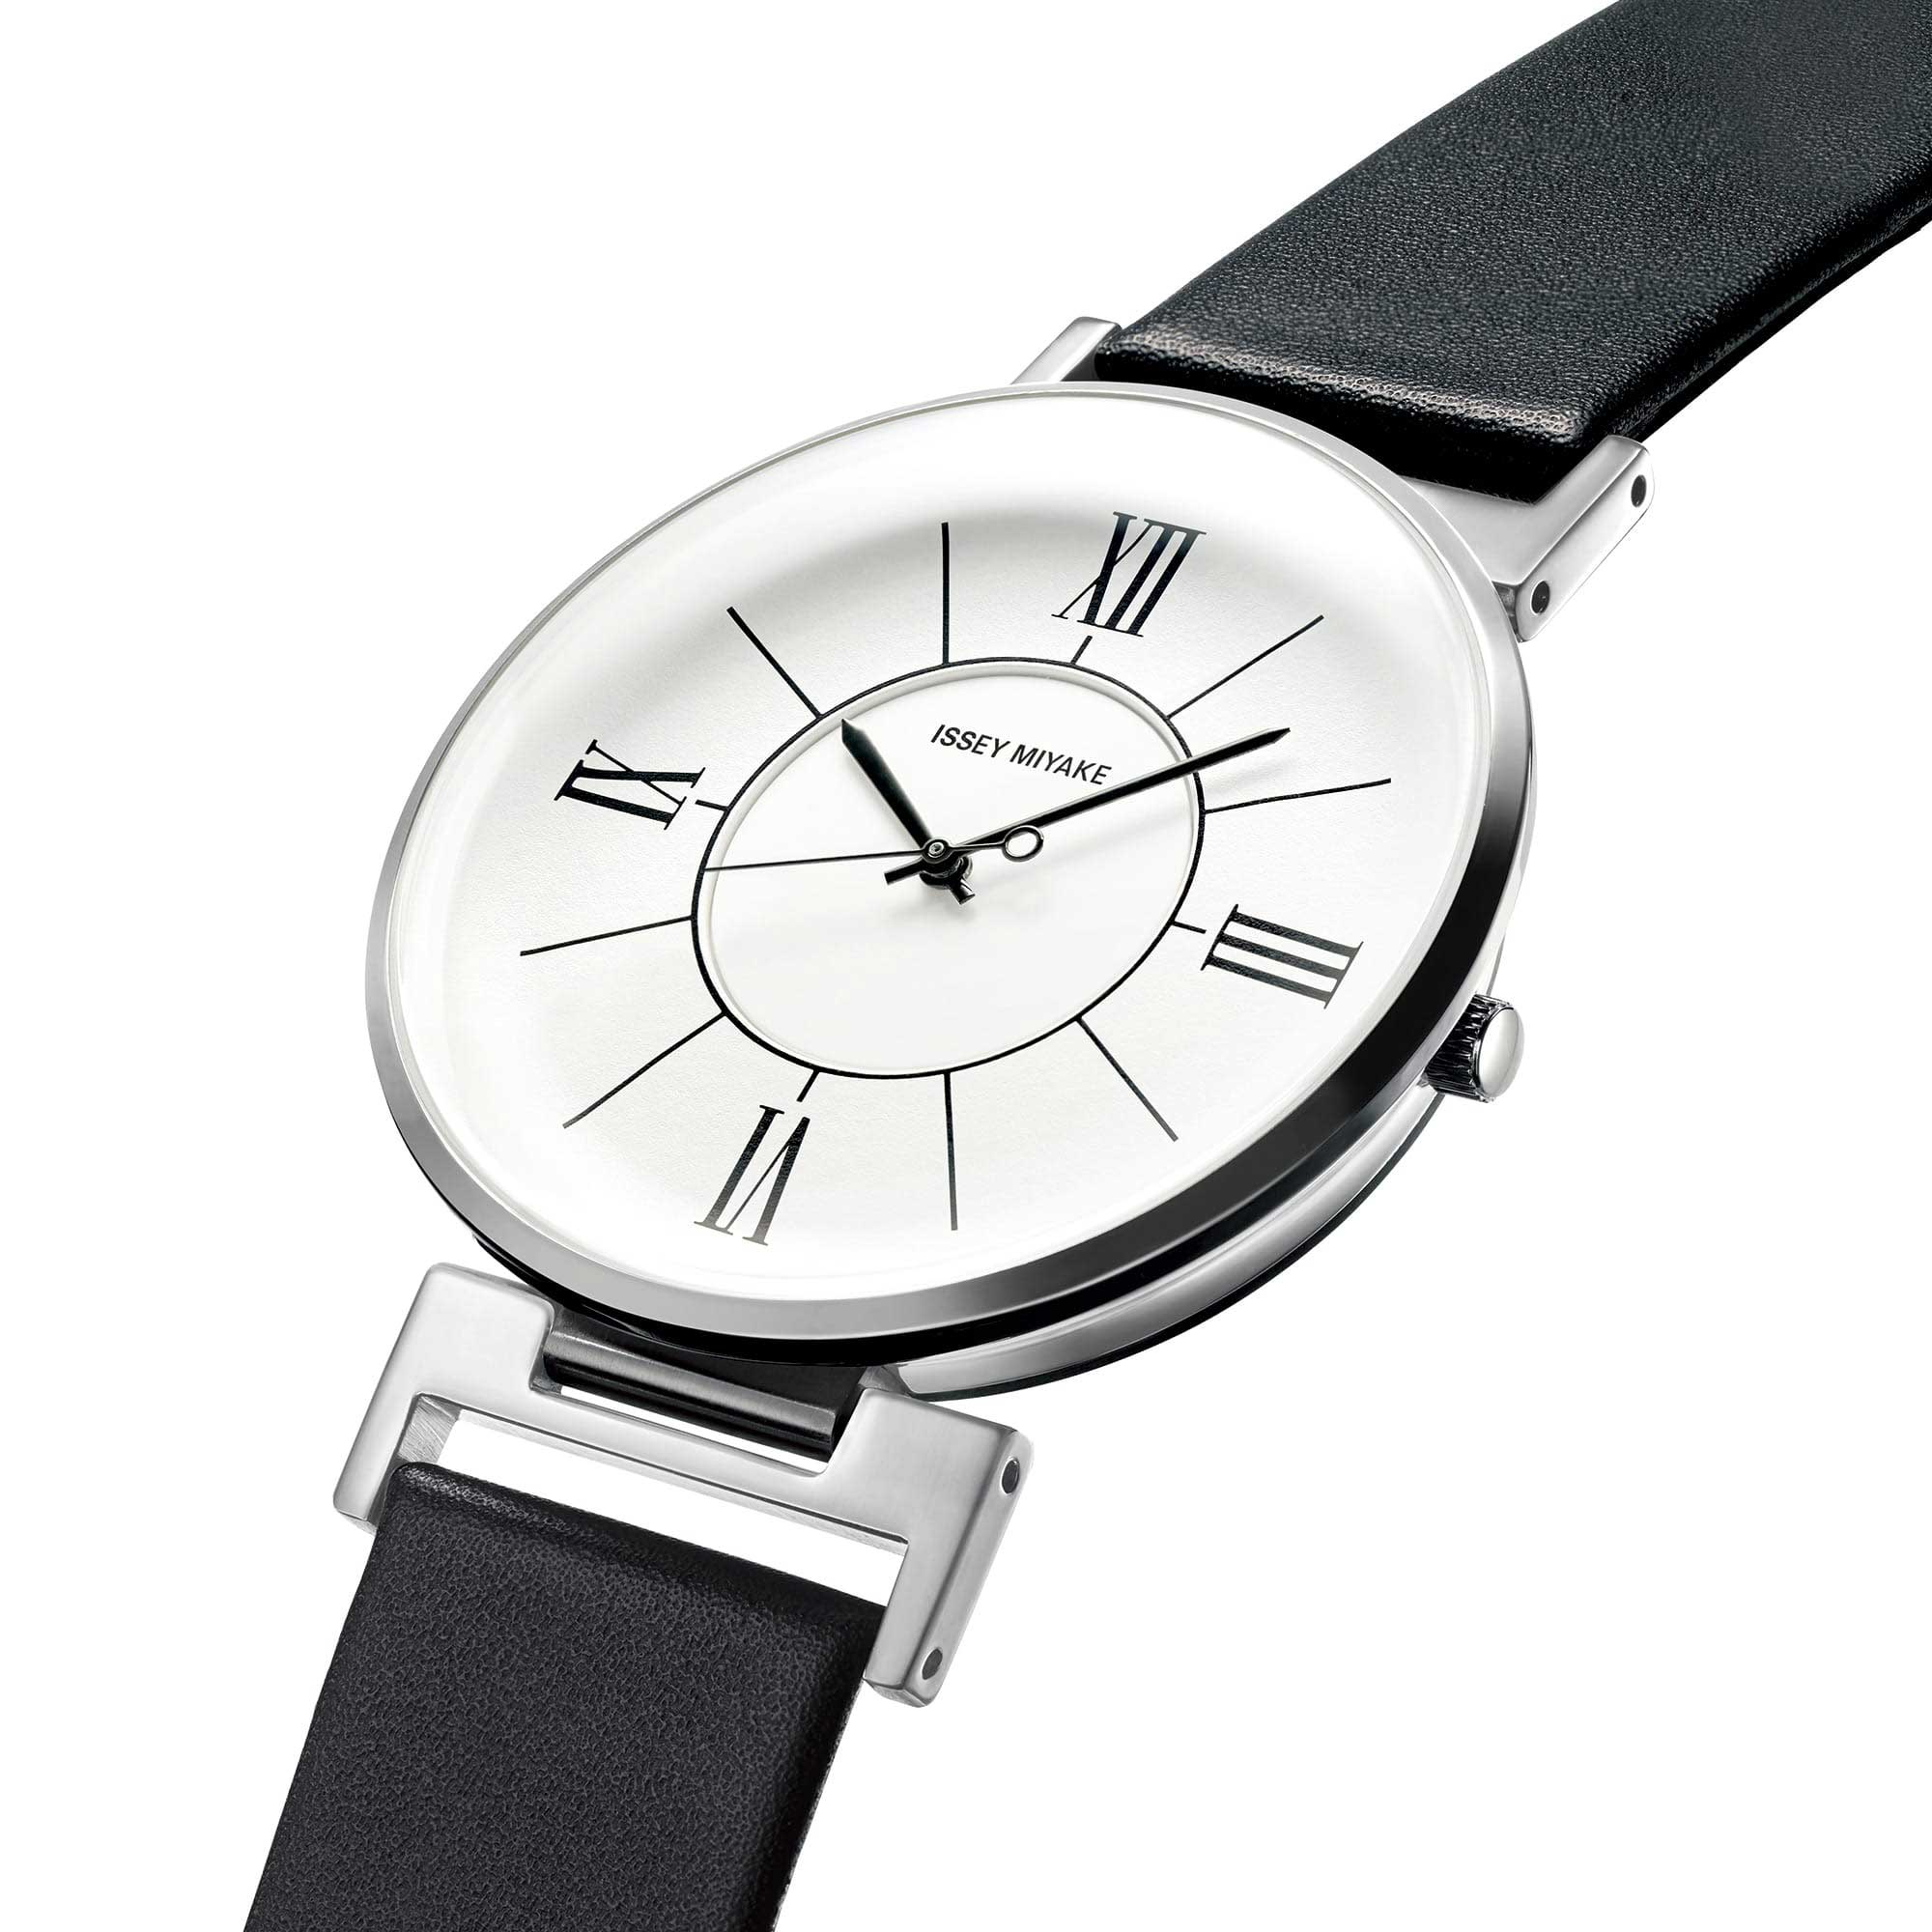 <span>The glass, with its glossy, curved surface like that of a car body, has been produced through careful cutting and processing. Its combination with the curved dial creates a cosmopolitan space. The glass of this watch is smooth to the touch.</span>